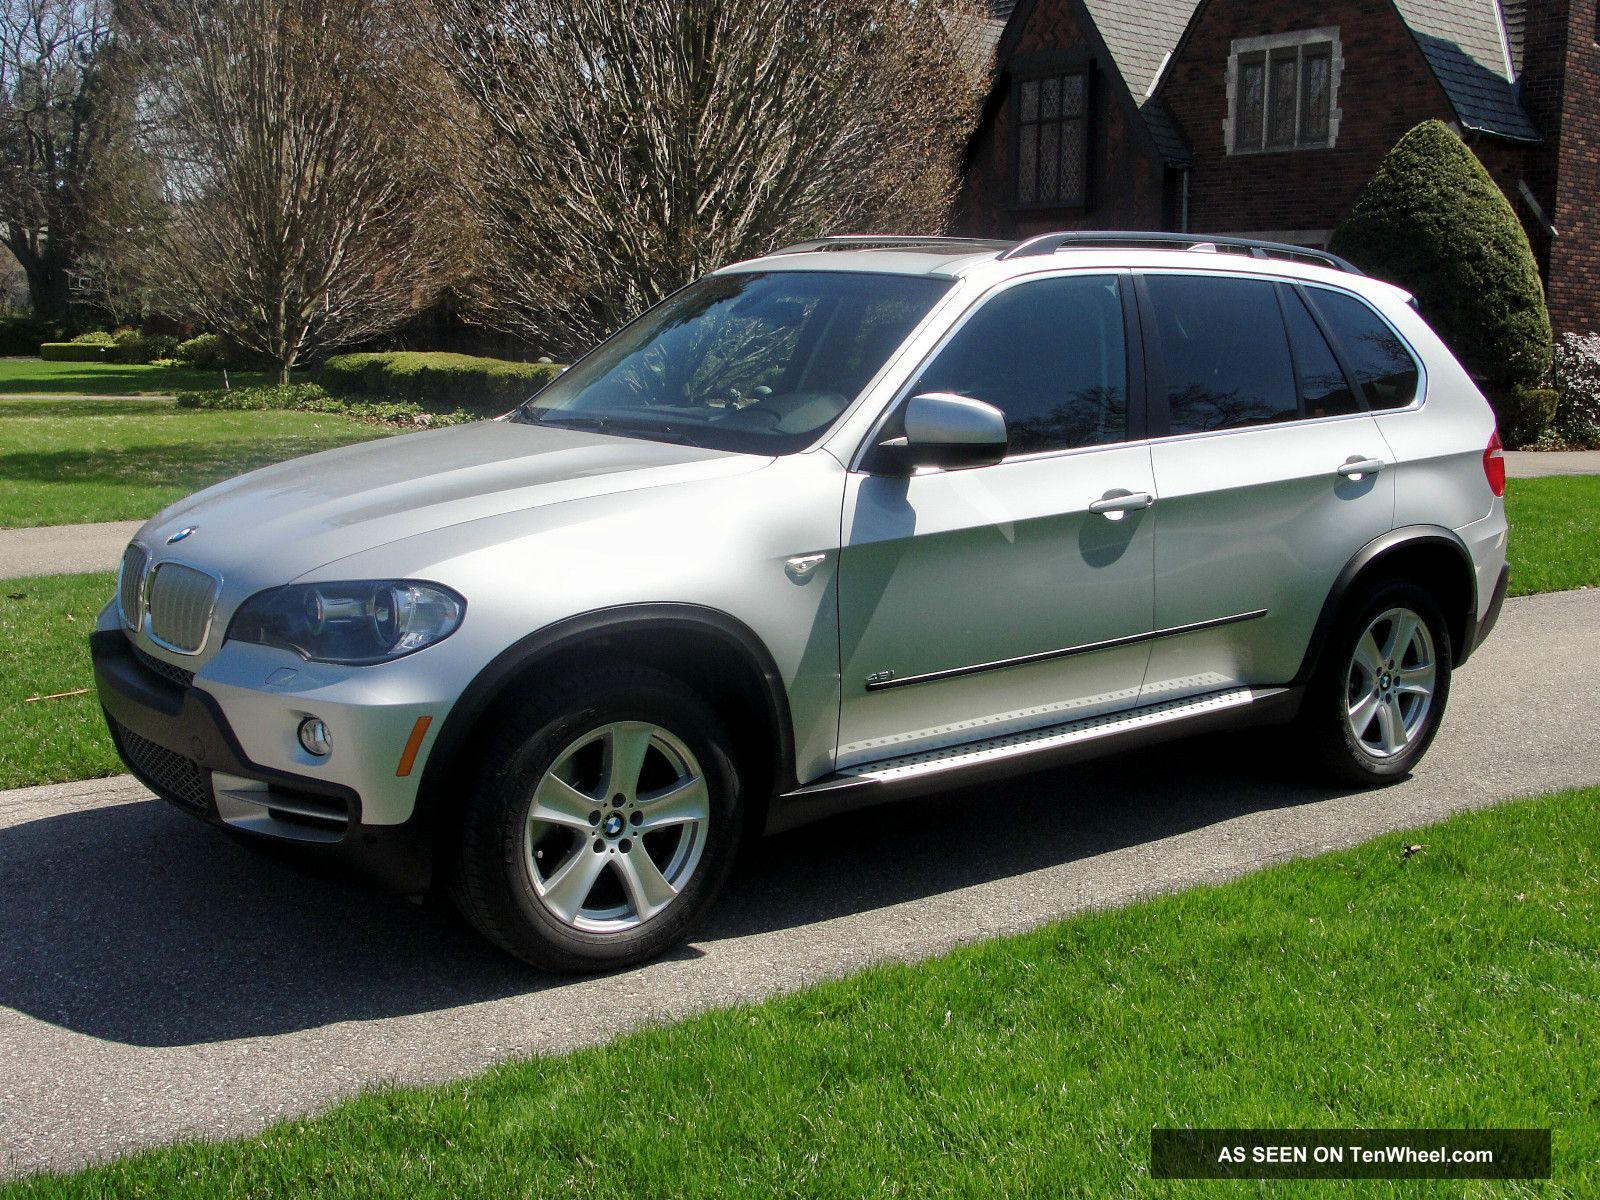 2008 bmw x5 4 8i sport utility serious offers considered. Black Bedroom Furniture Sets. Home Design Ideas